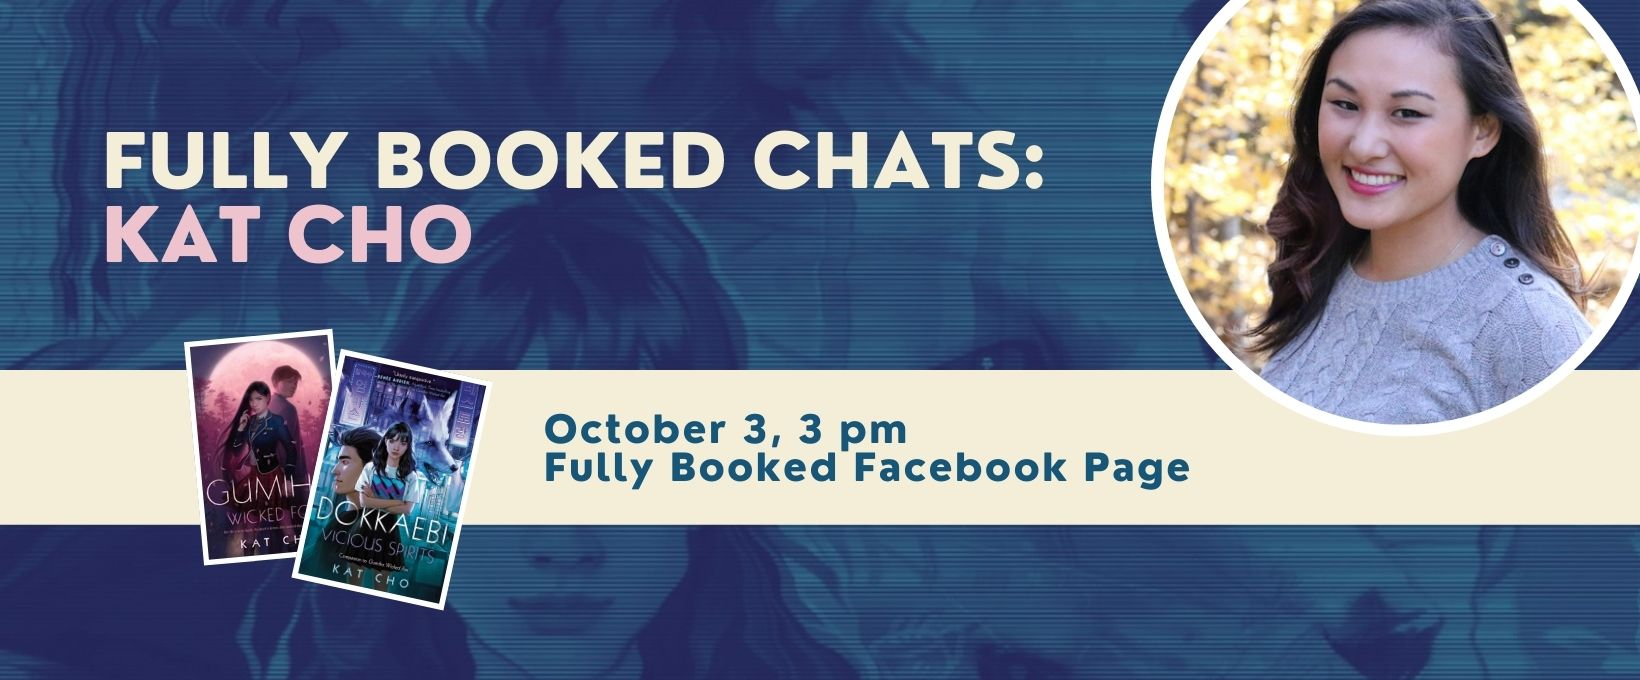 Fully Booked Chats: Kat Cho